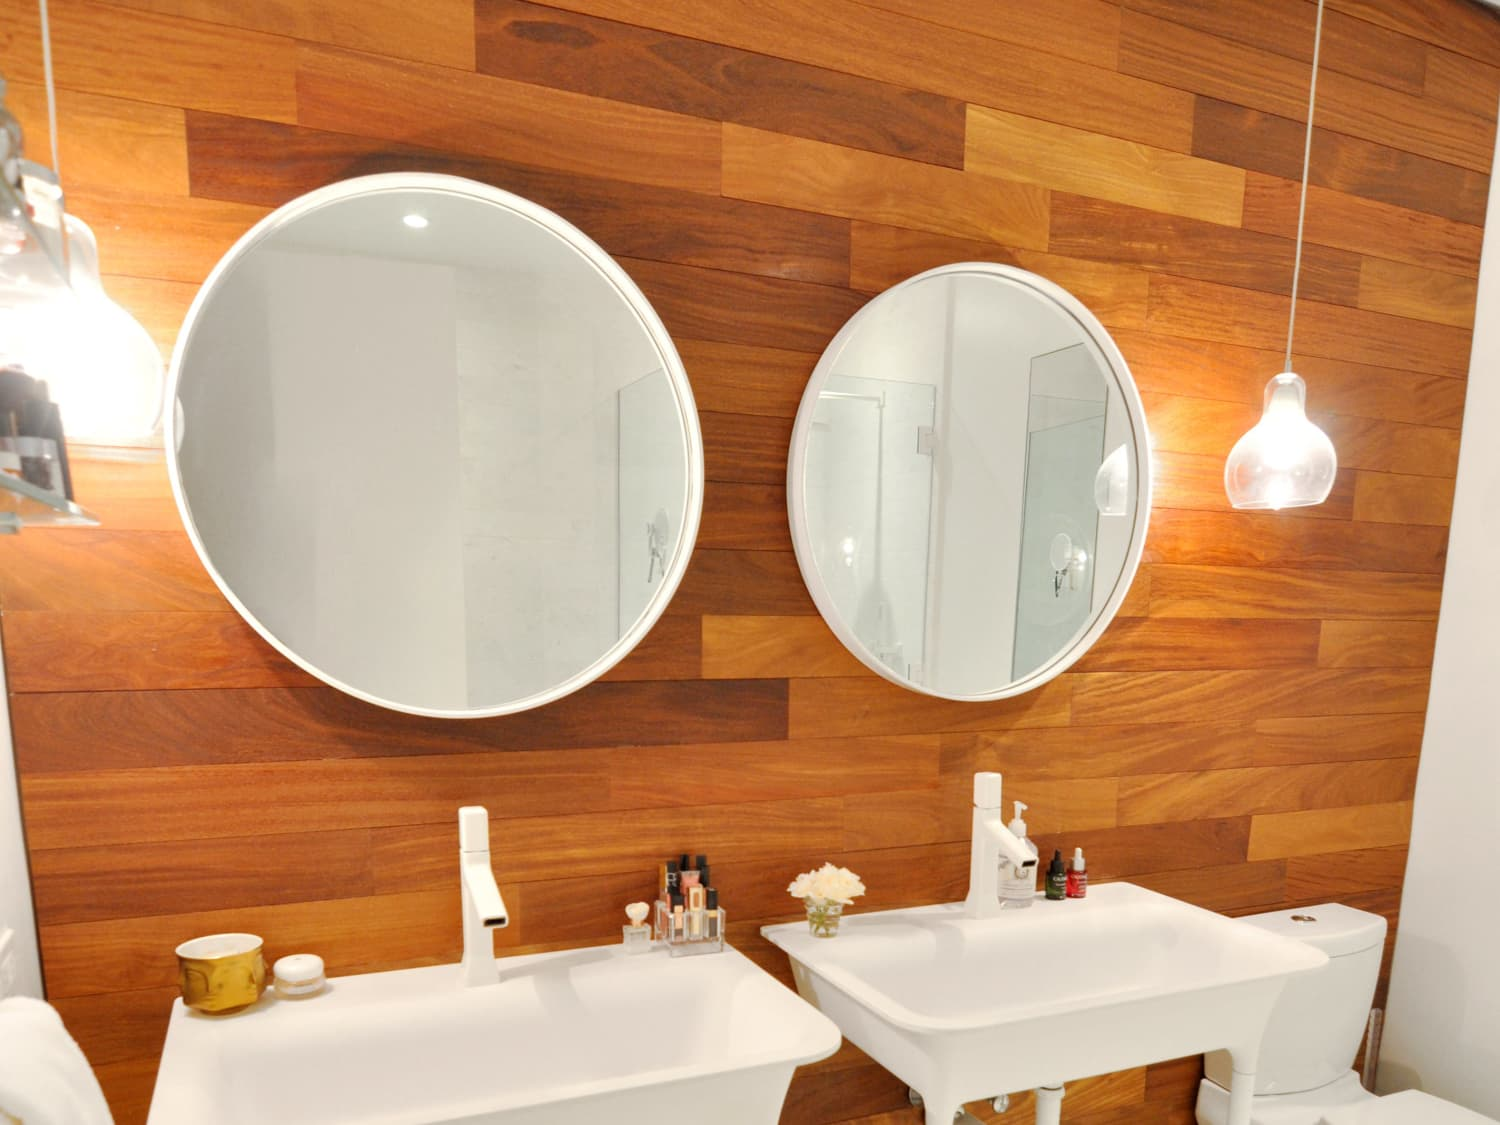 Windowless Bathrooms 9 That Aren T Bad At All And Why Apartment Therapy